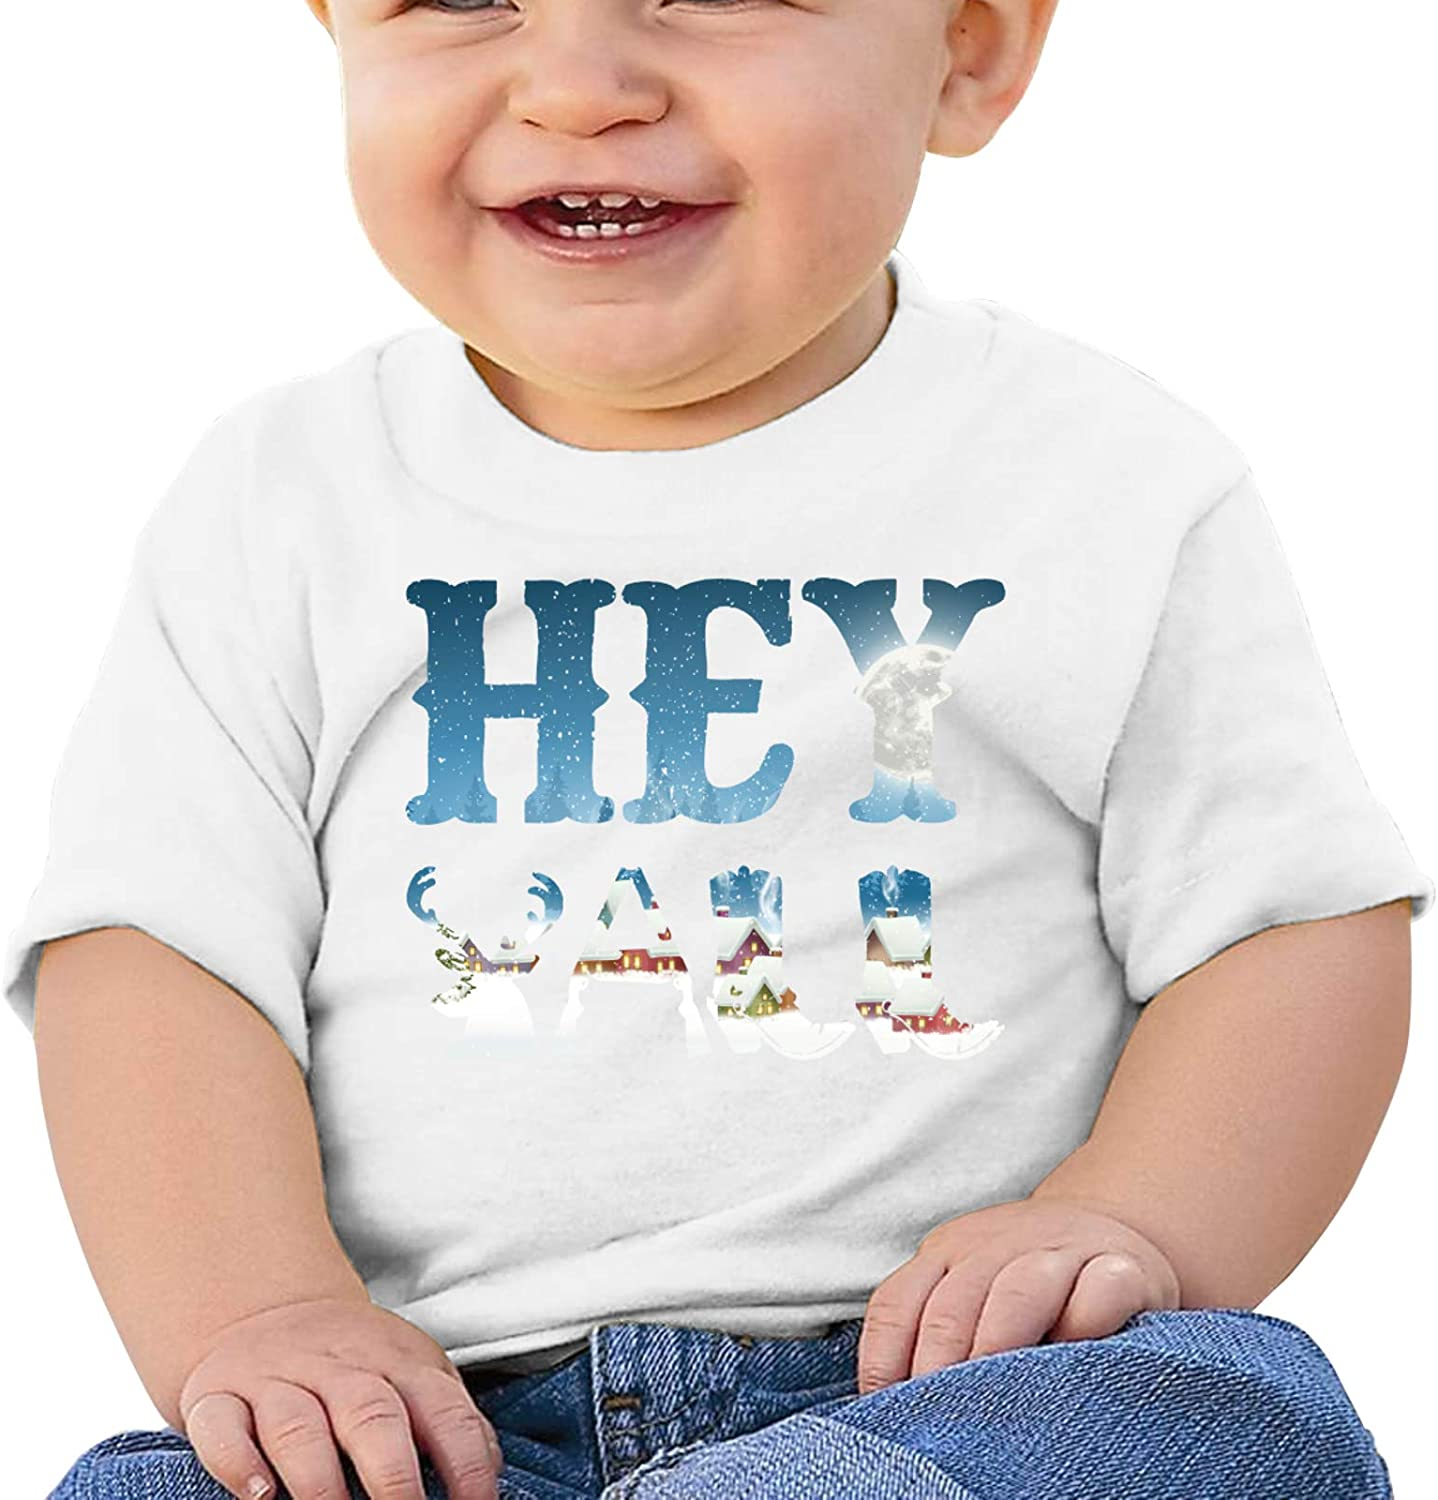 Hey Yall Cute Country Redneck Boys Cotton T-Shirt Toddler Short Sleeve Crew Neck Top